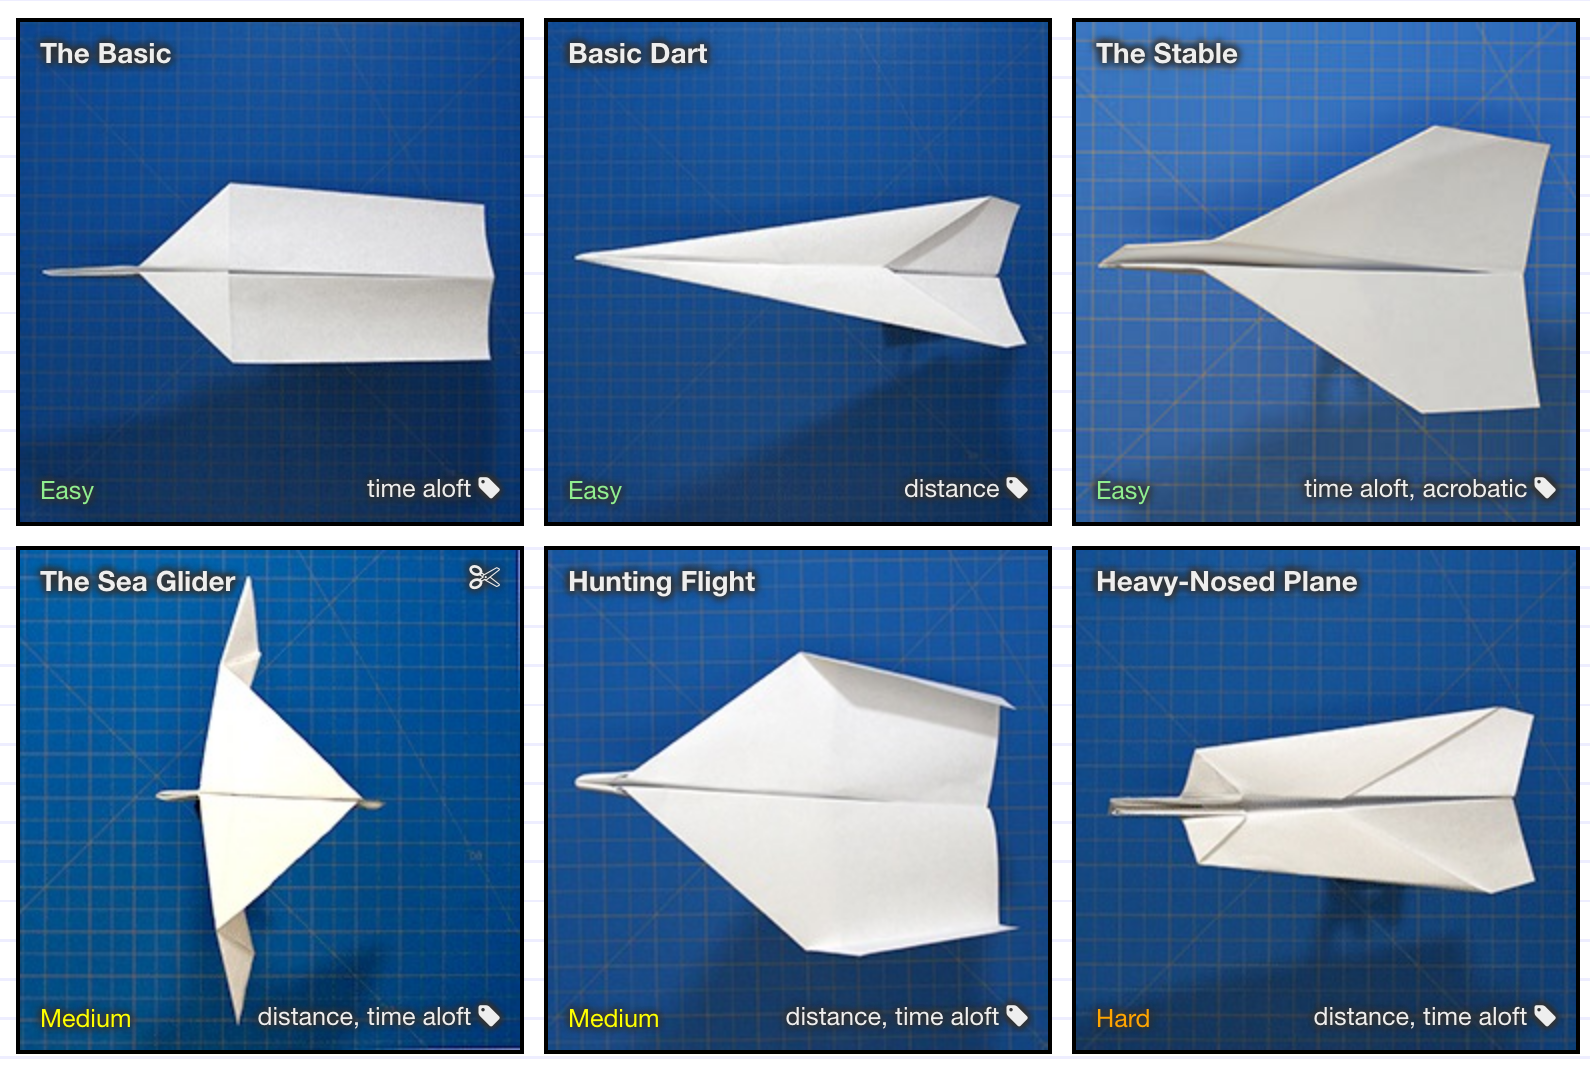 paperplane.png